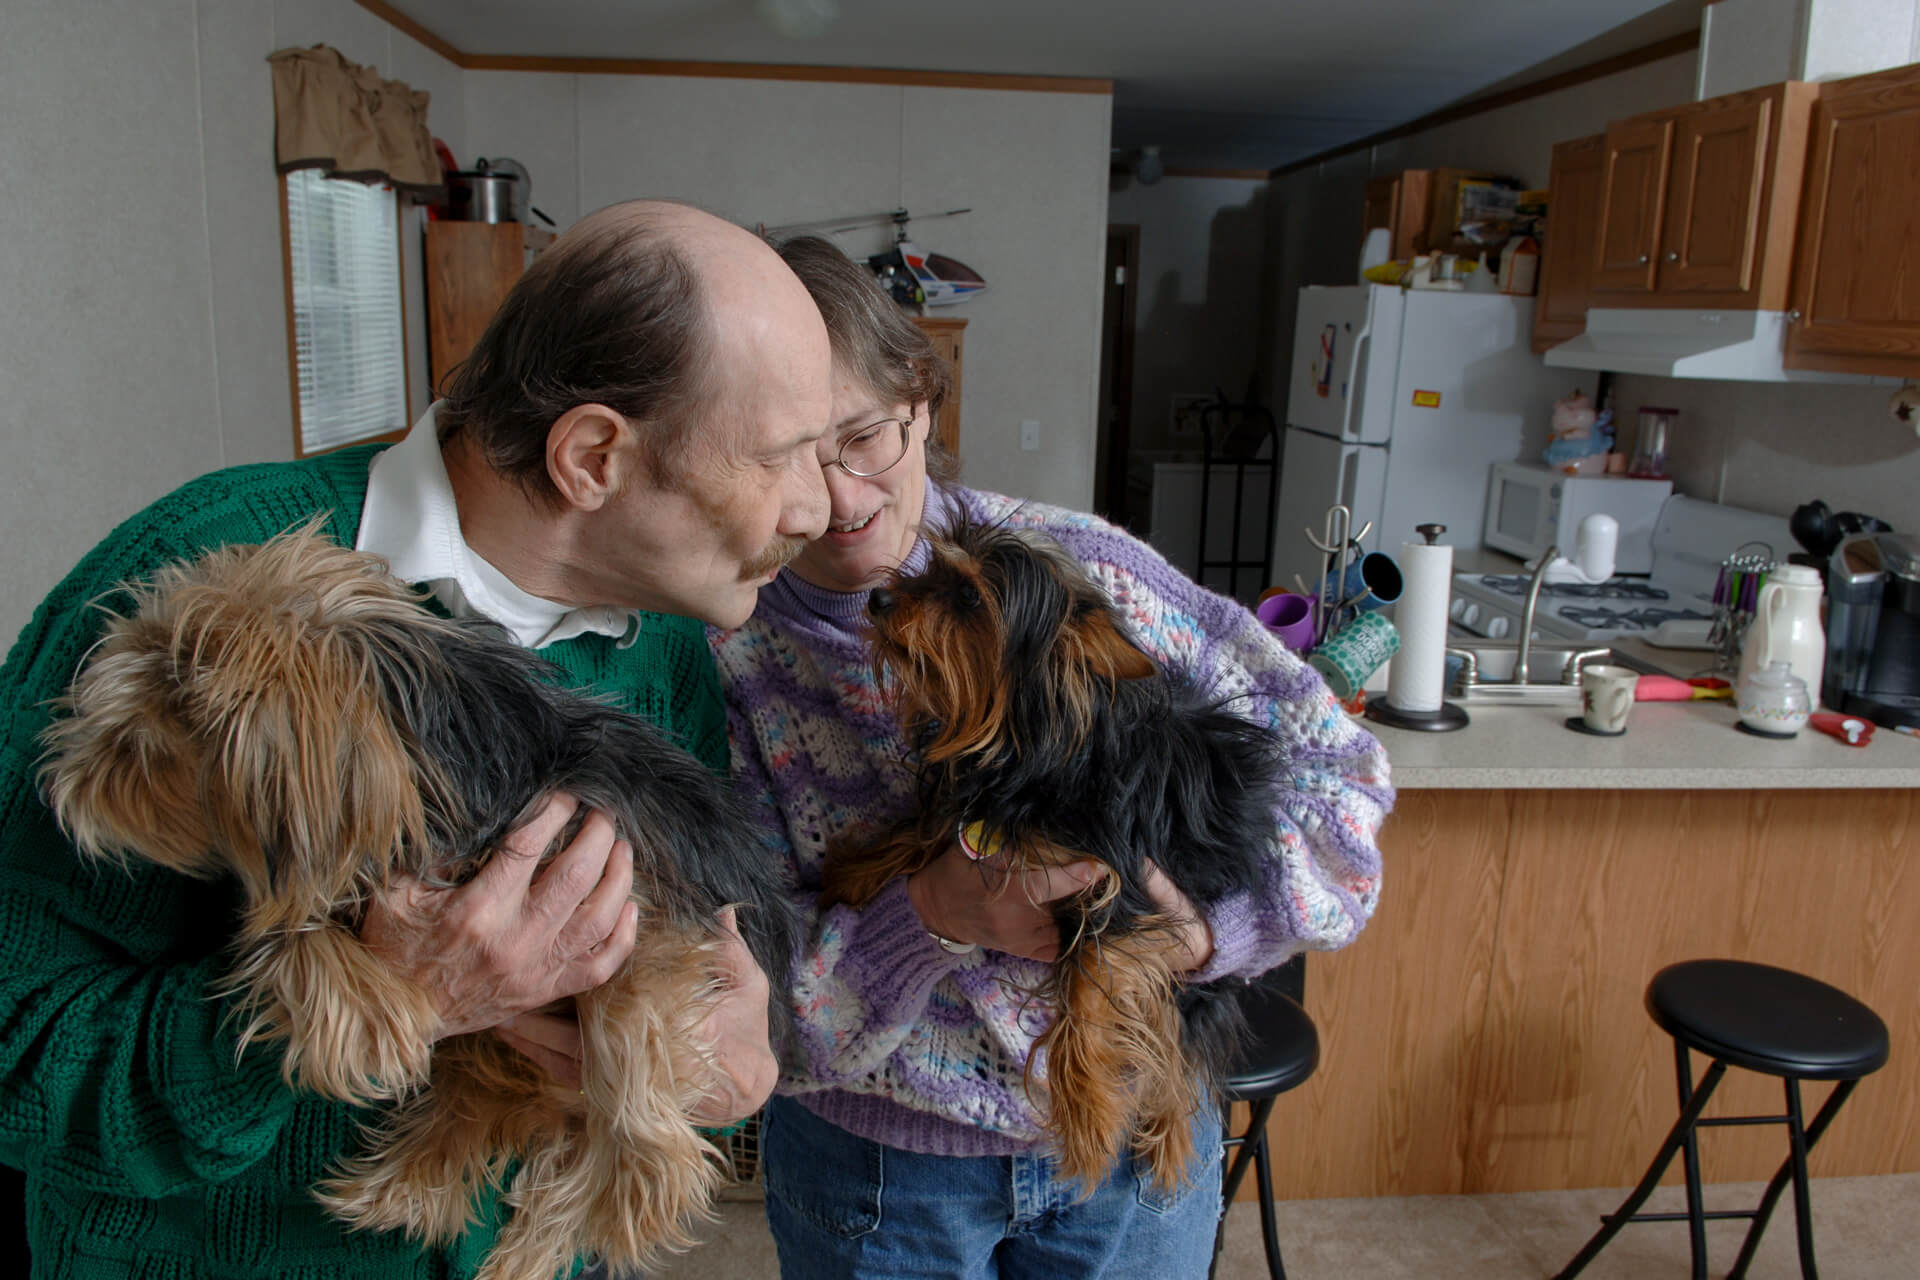 Man and woman holding squirmy dogs in kitchen